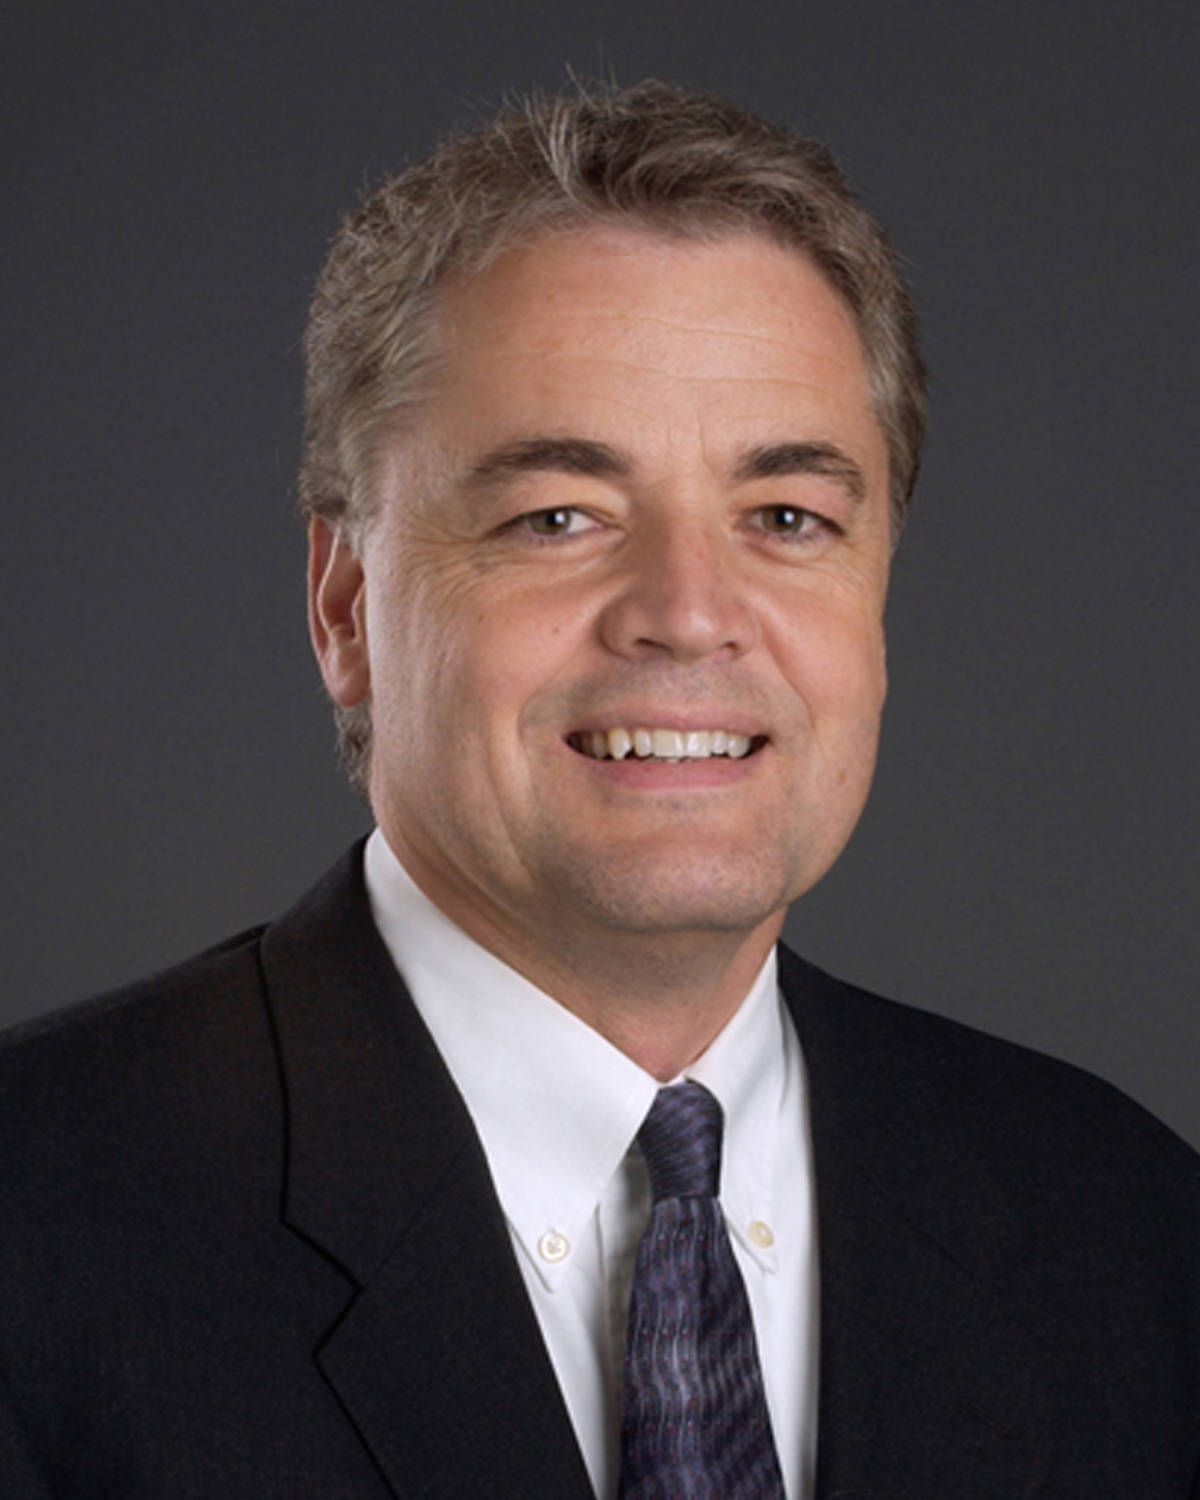 Gordy Presnell is entering 10th season at Boise State.